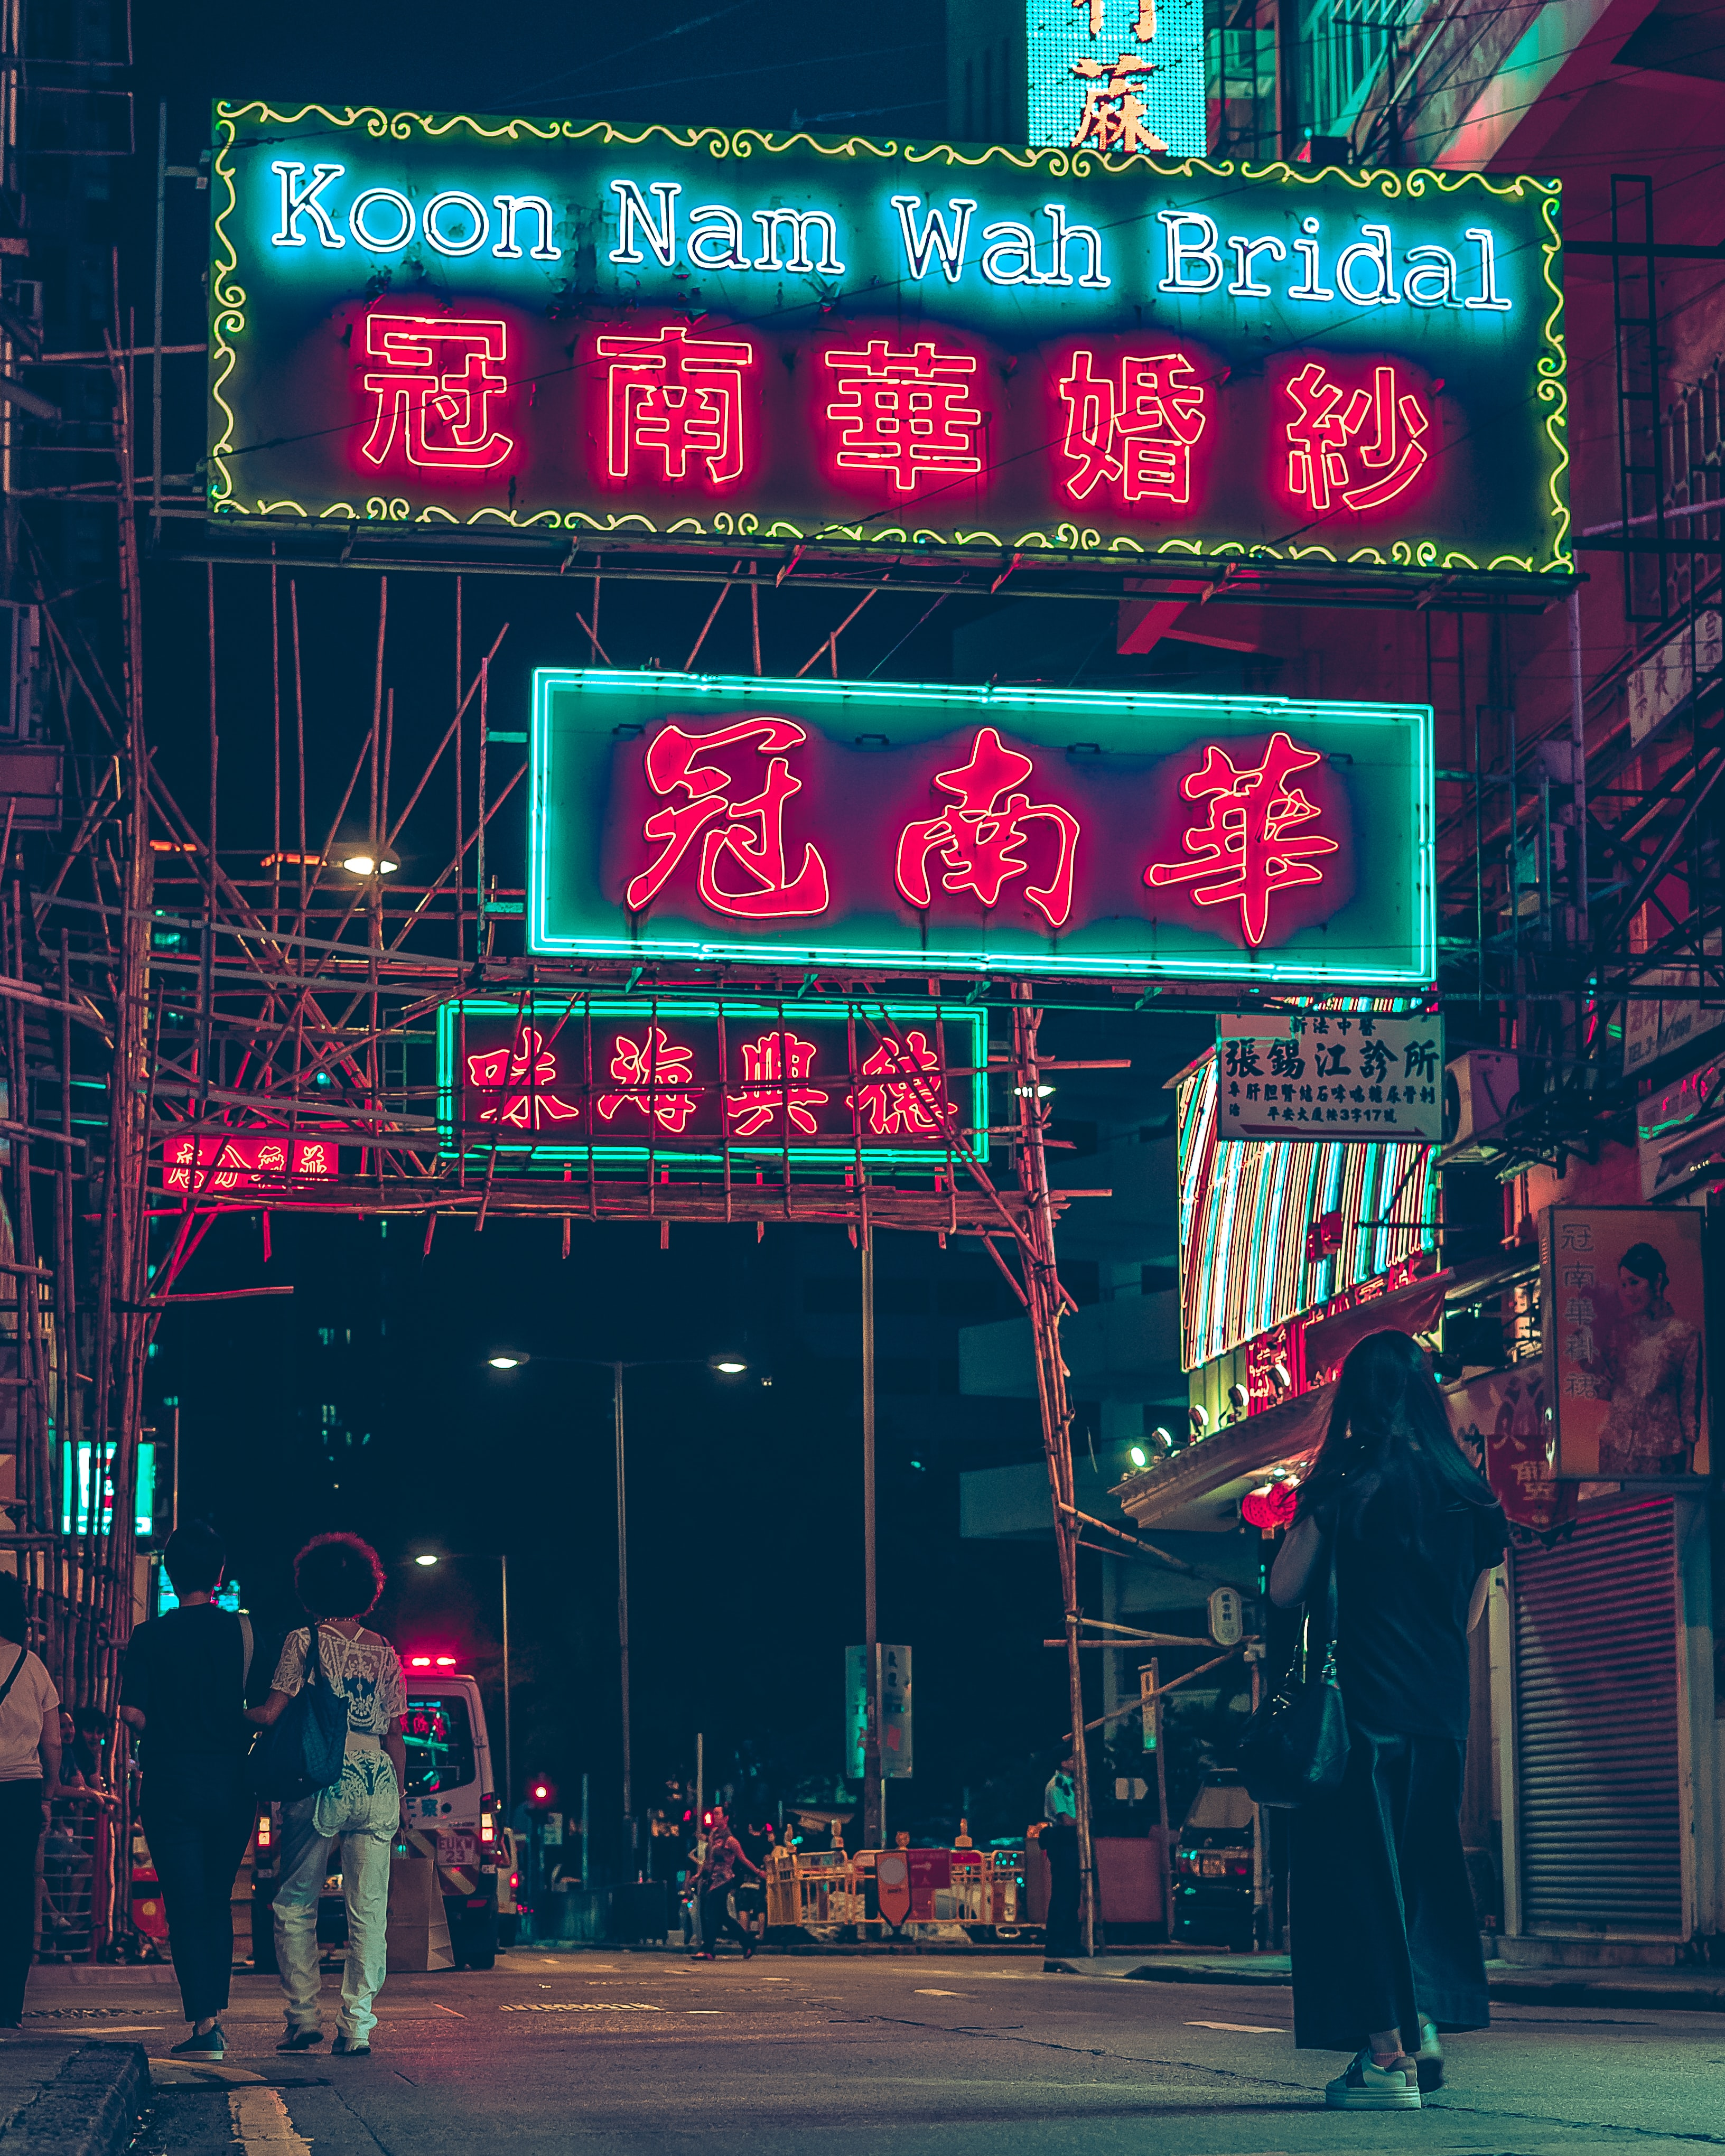 lighted Koon Nam Wah Bridal signage